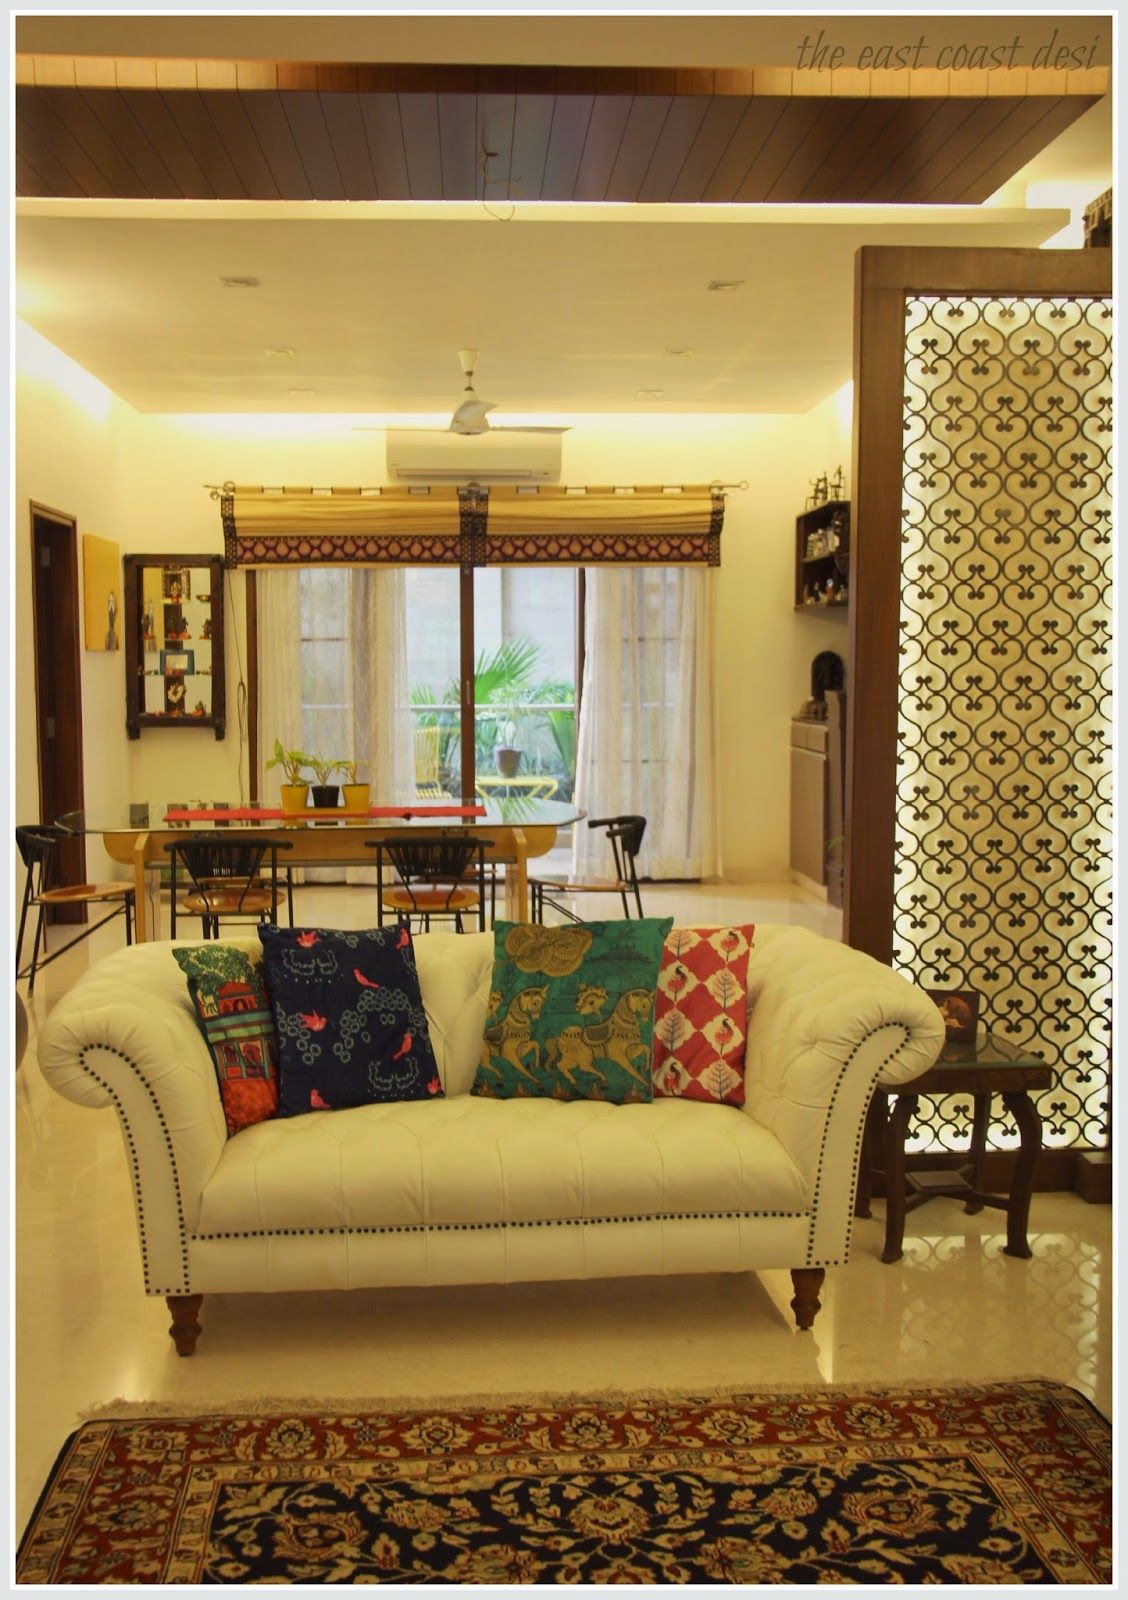 Middle Eastern Bedroom Decor The East Coast Desi Masterful Mixing Home Tour Decorhome